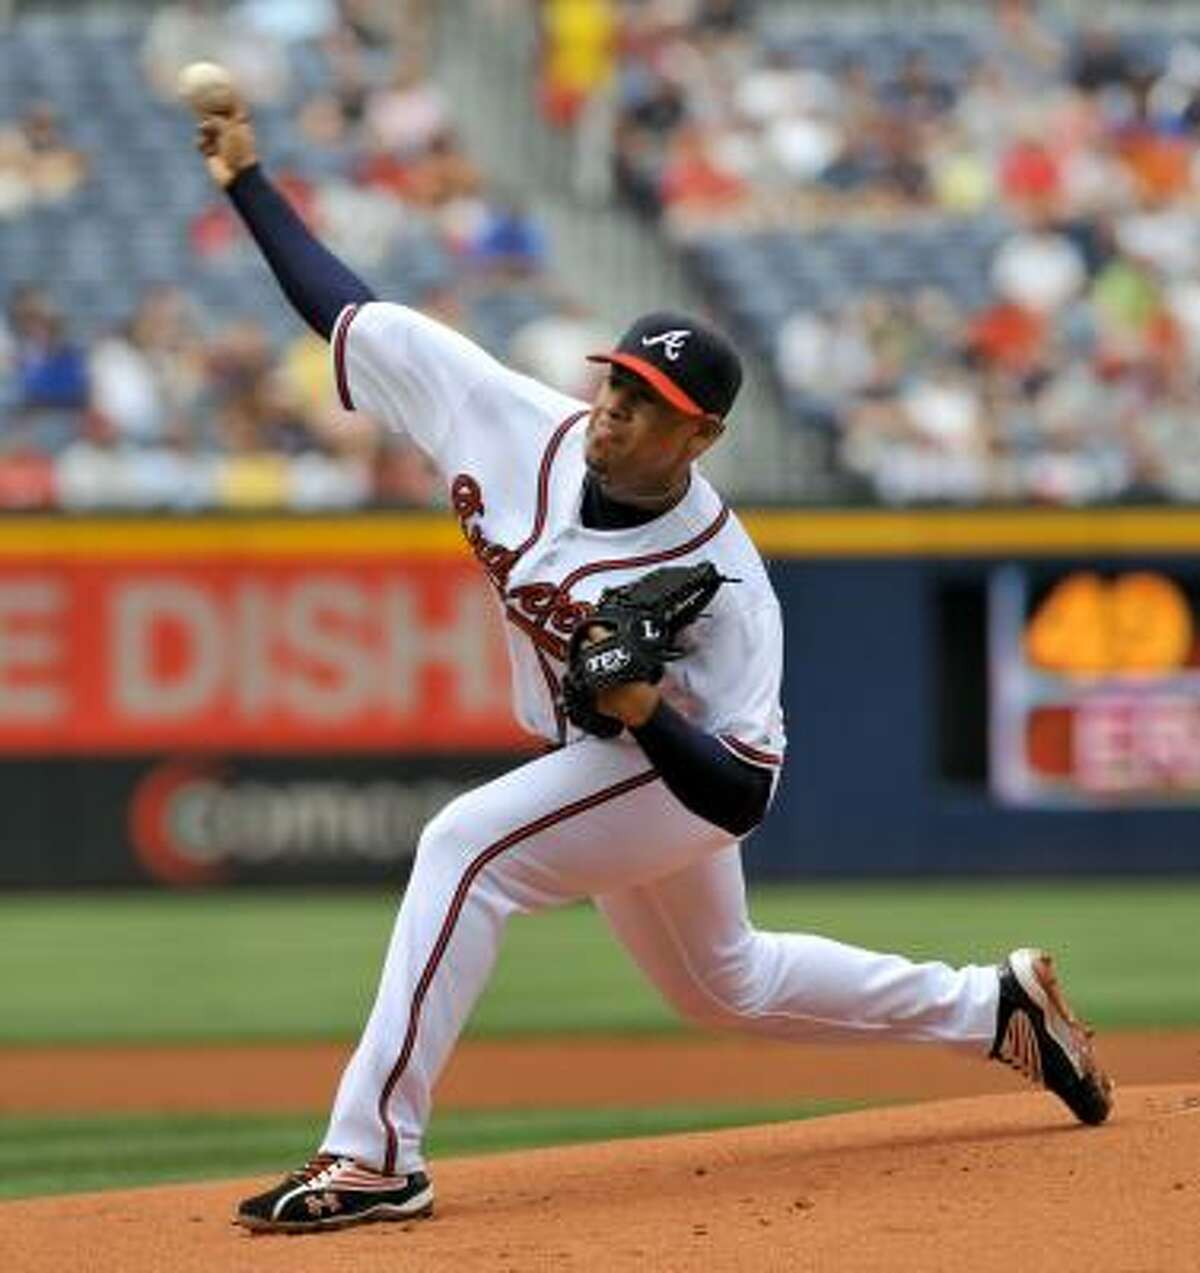 Atlanta Braves pitcher Jair Jurrjens started against the Astros. Jurrjens only pitched two innings due to the rain delay.